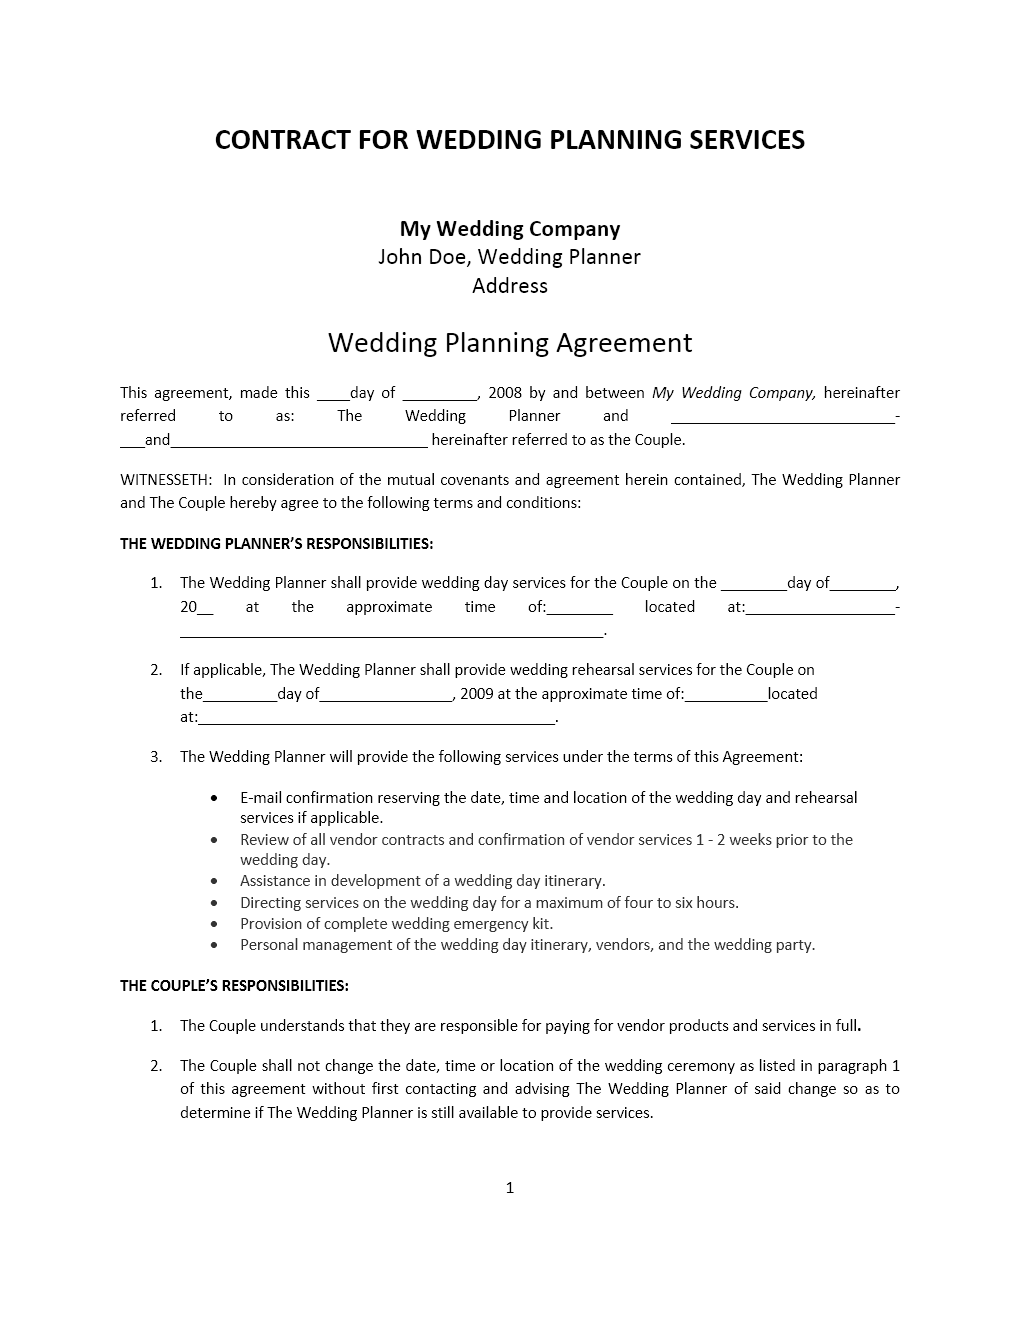 Wedding Planner Contract Template  Basic Contract Outline